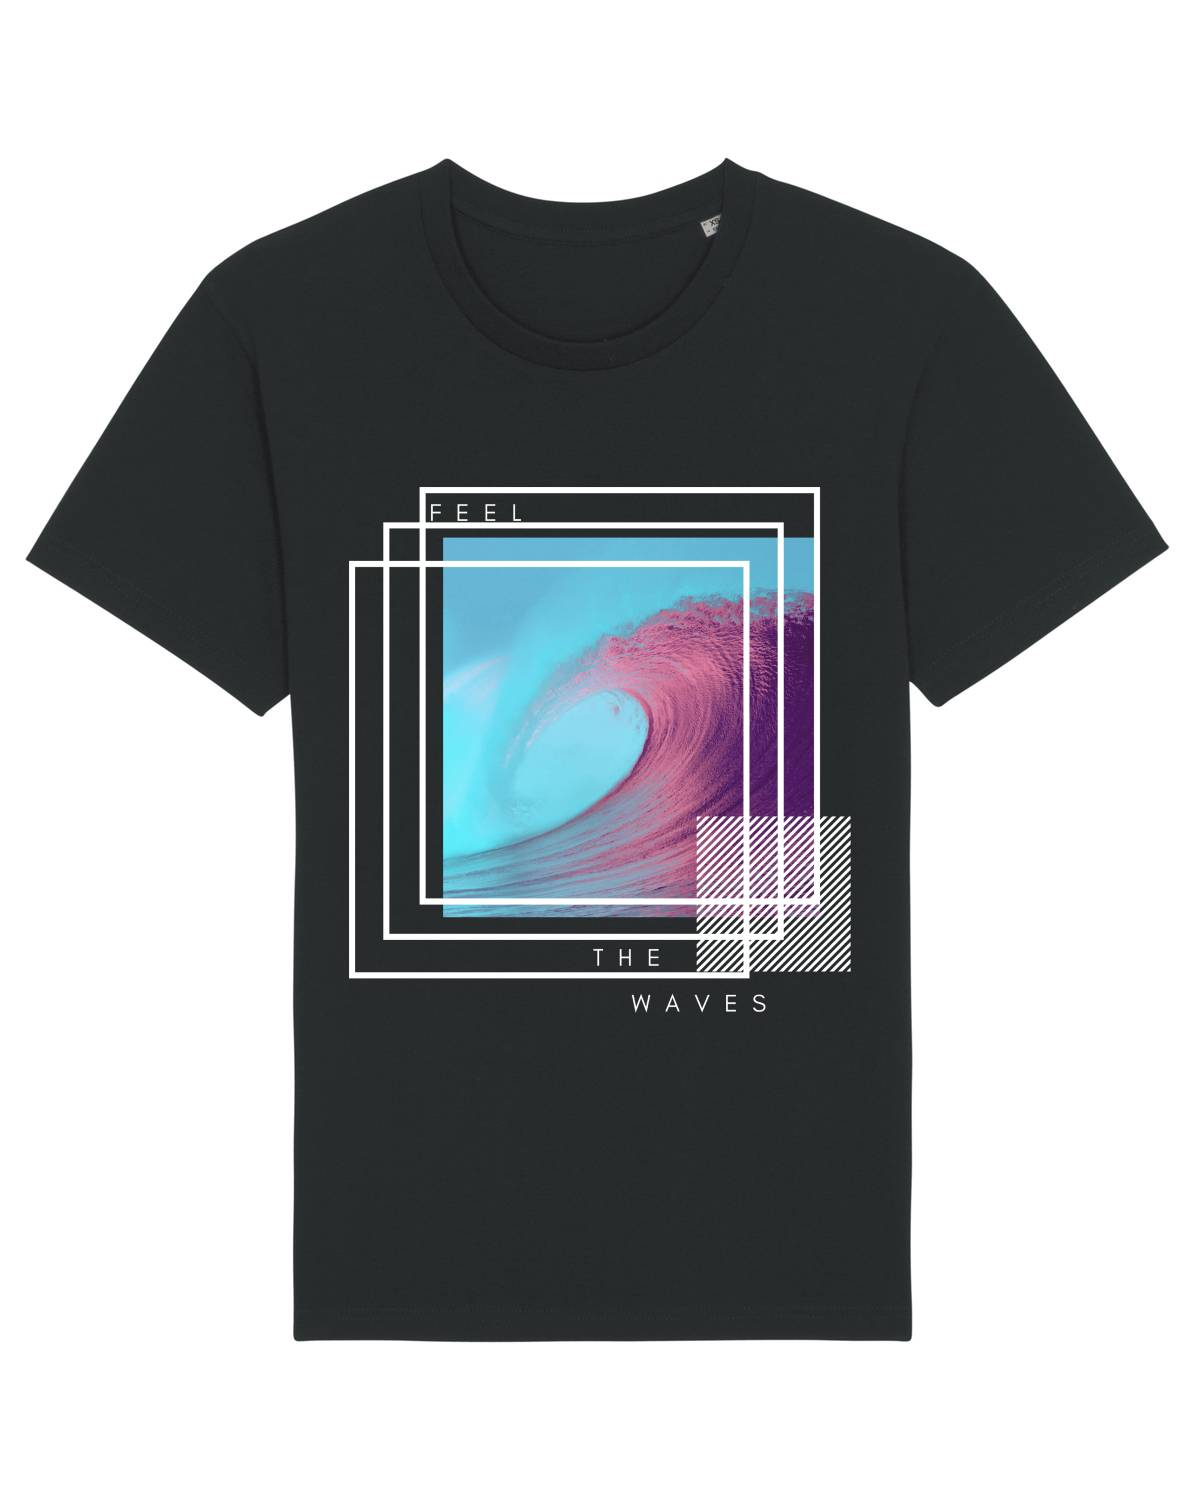 Feel the waves unisex T-shirt